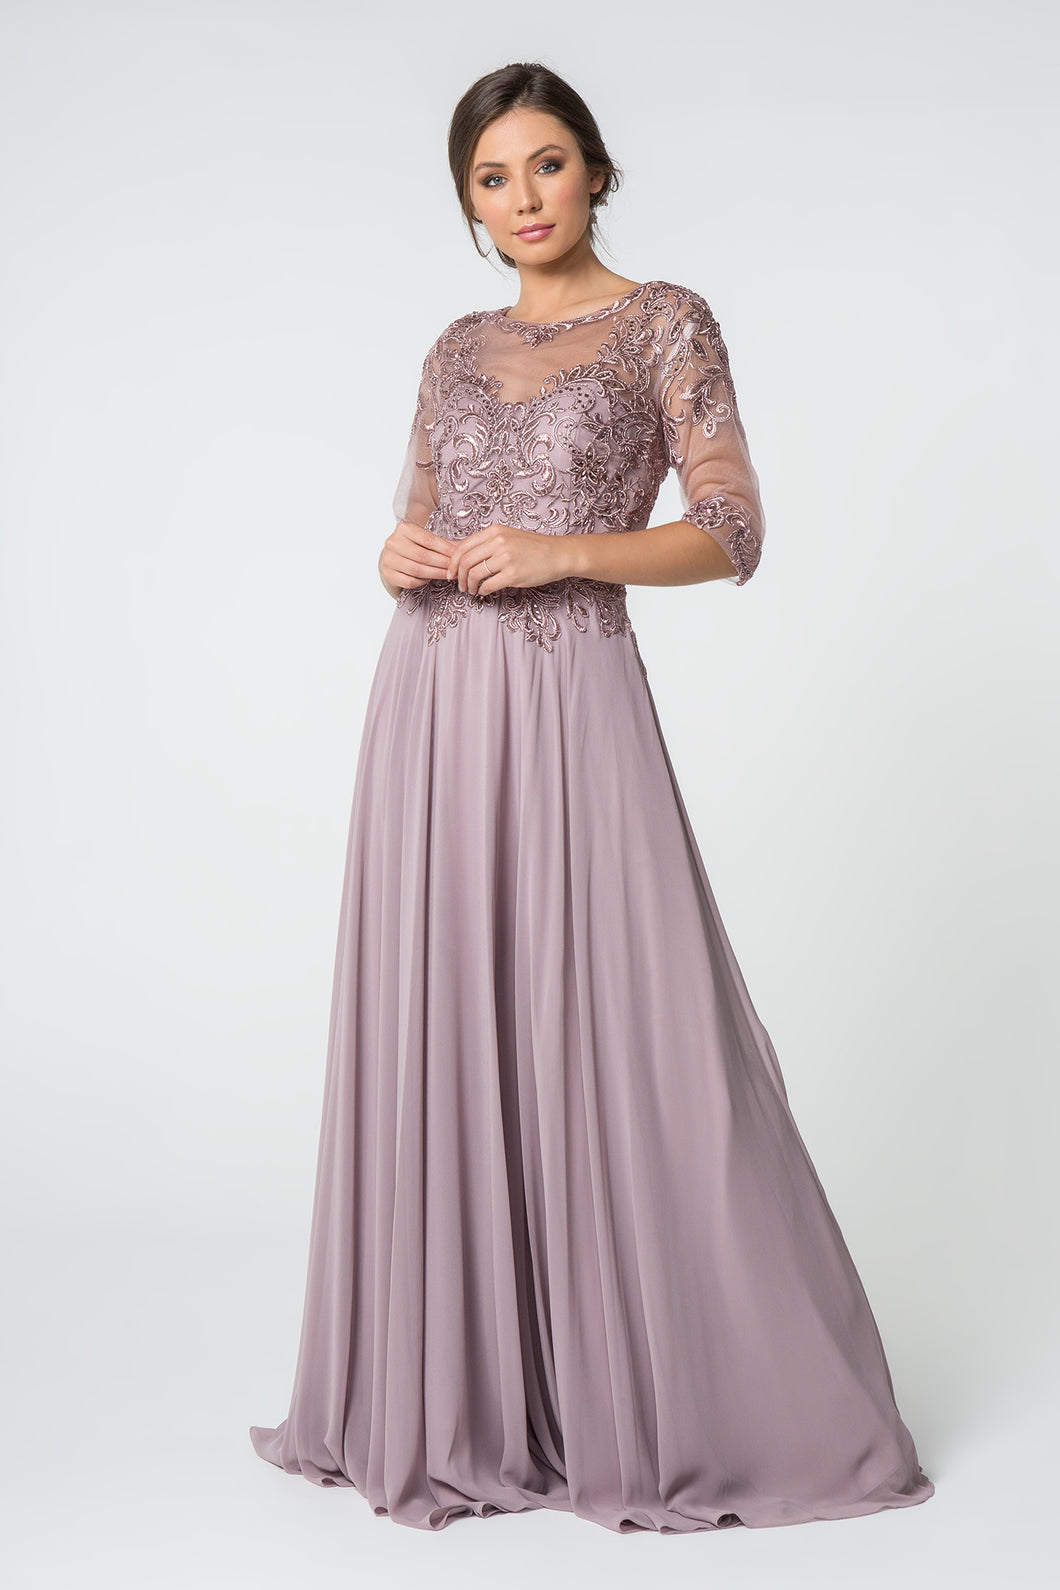 Vera Mothers Dress Half Sleeve Embroidered Top with Long Skirt in Mauve G2812XR-Mauve